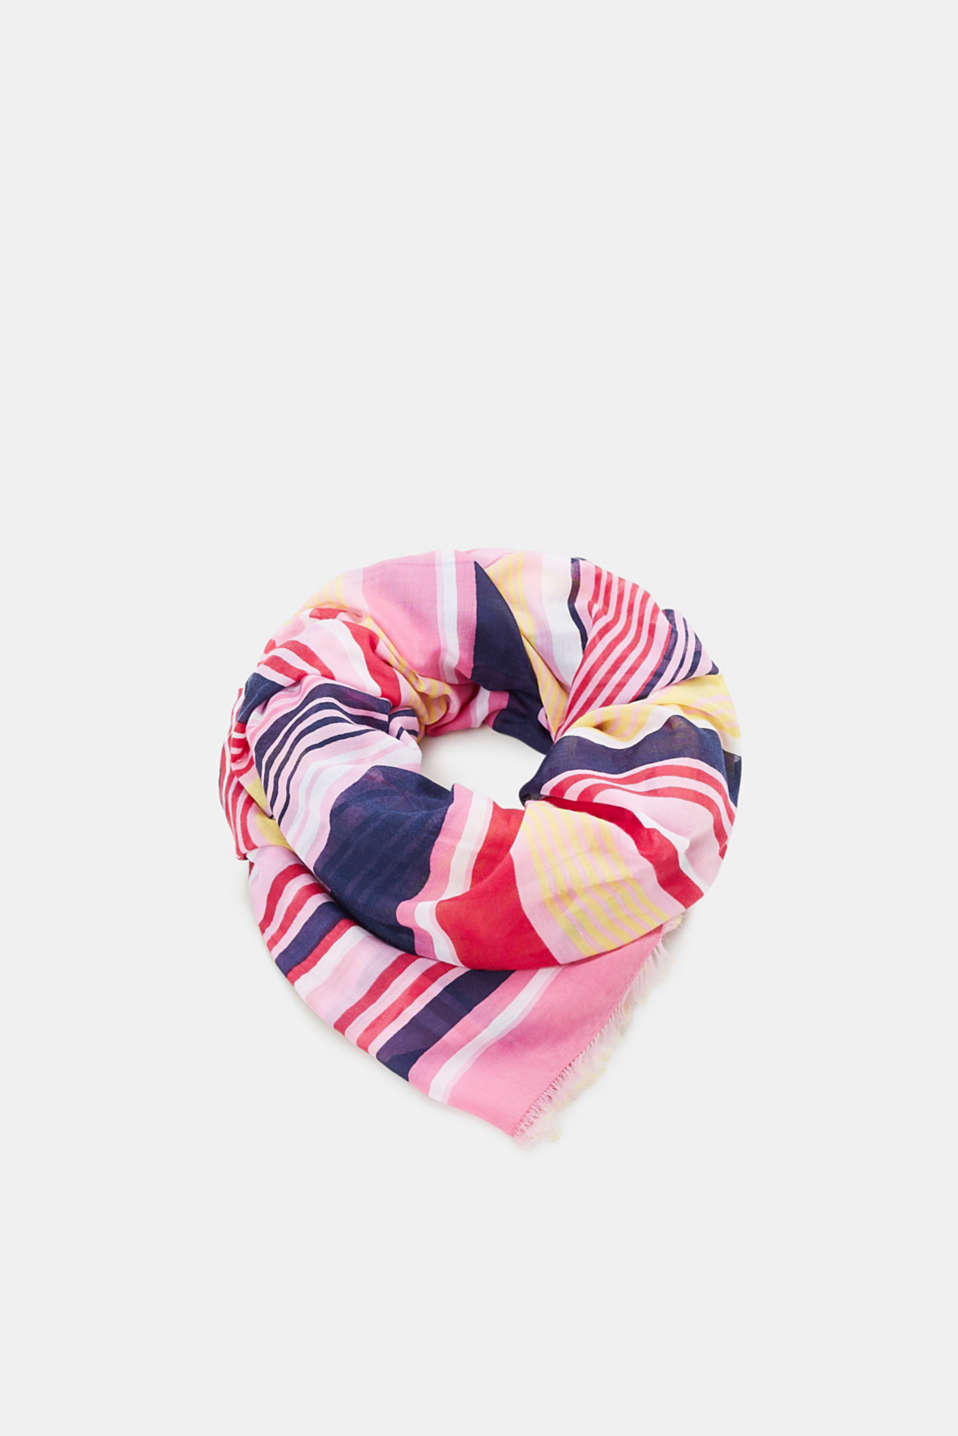 edc - Lightweight scarf with stripes, recycled